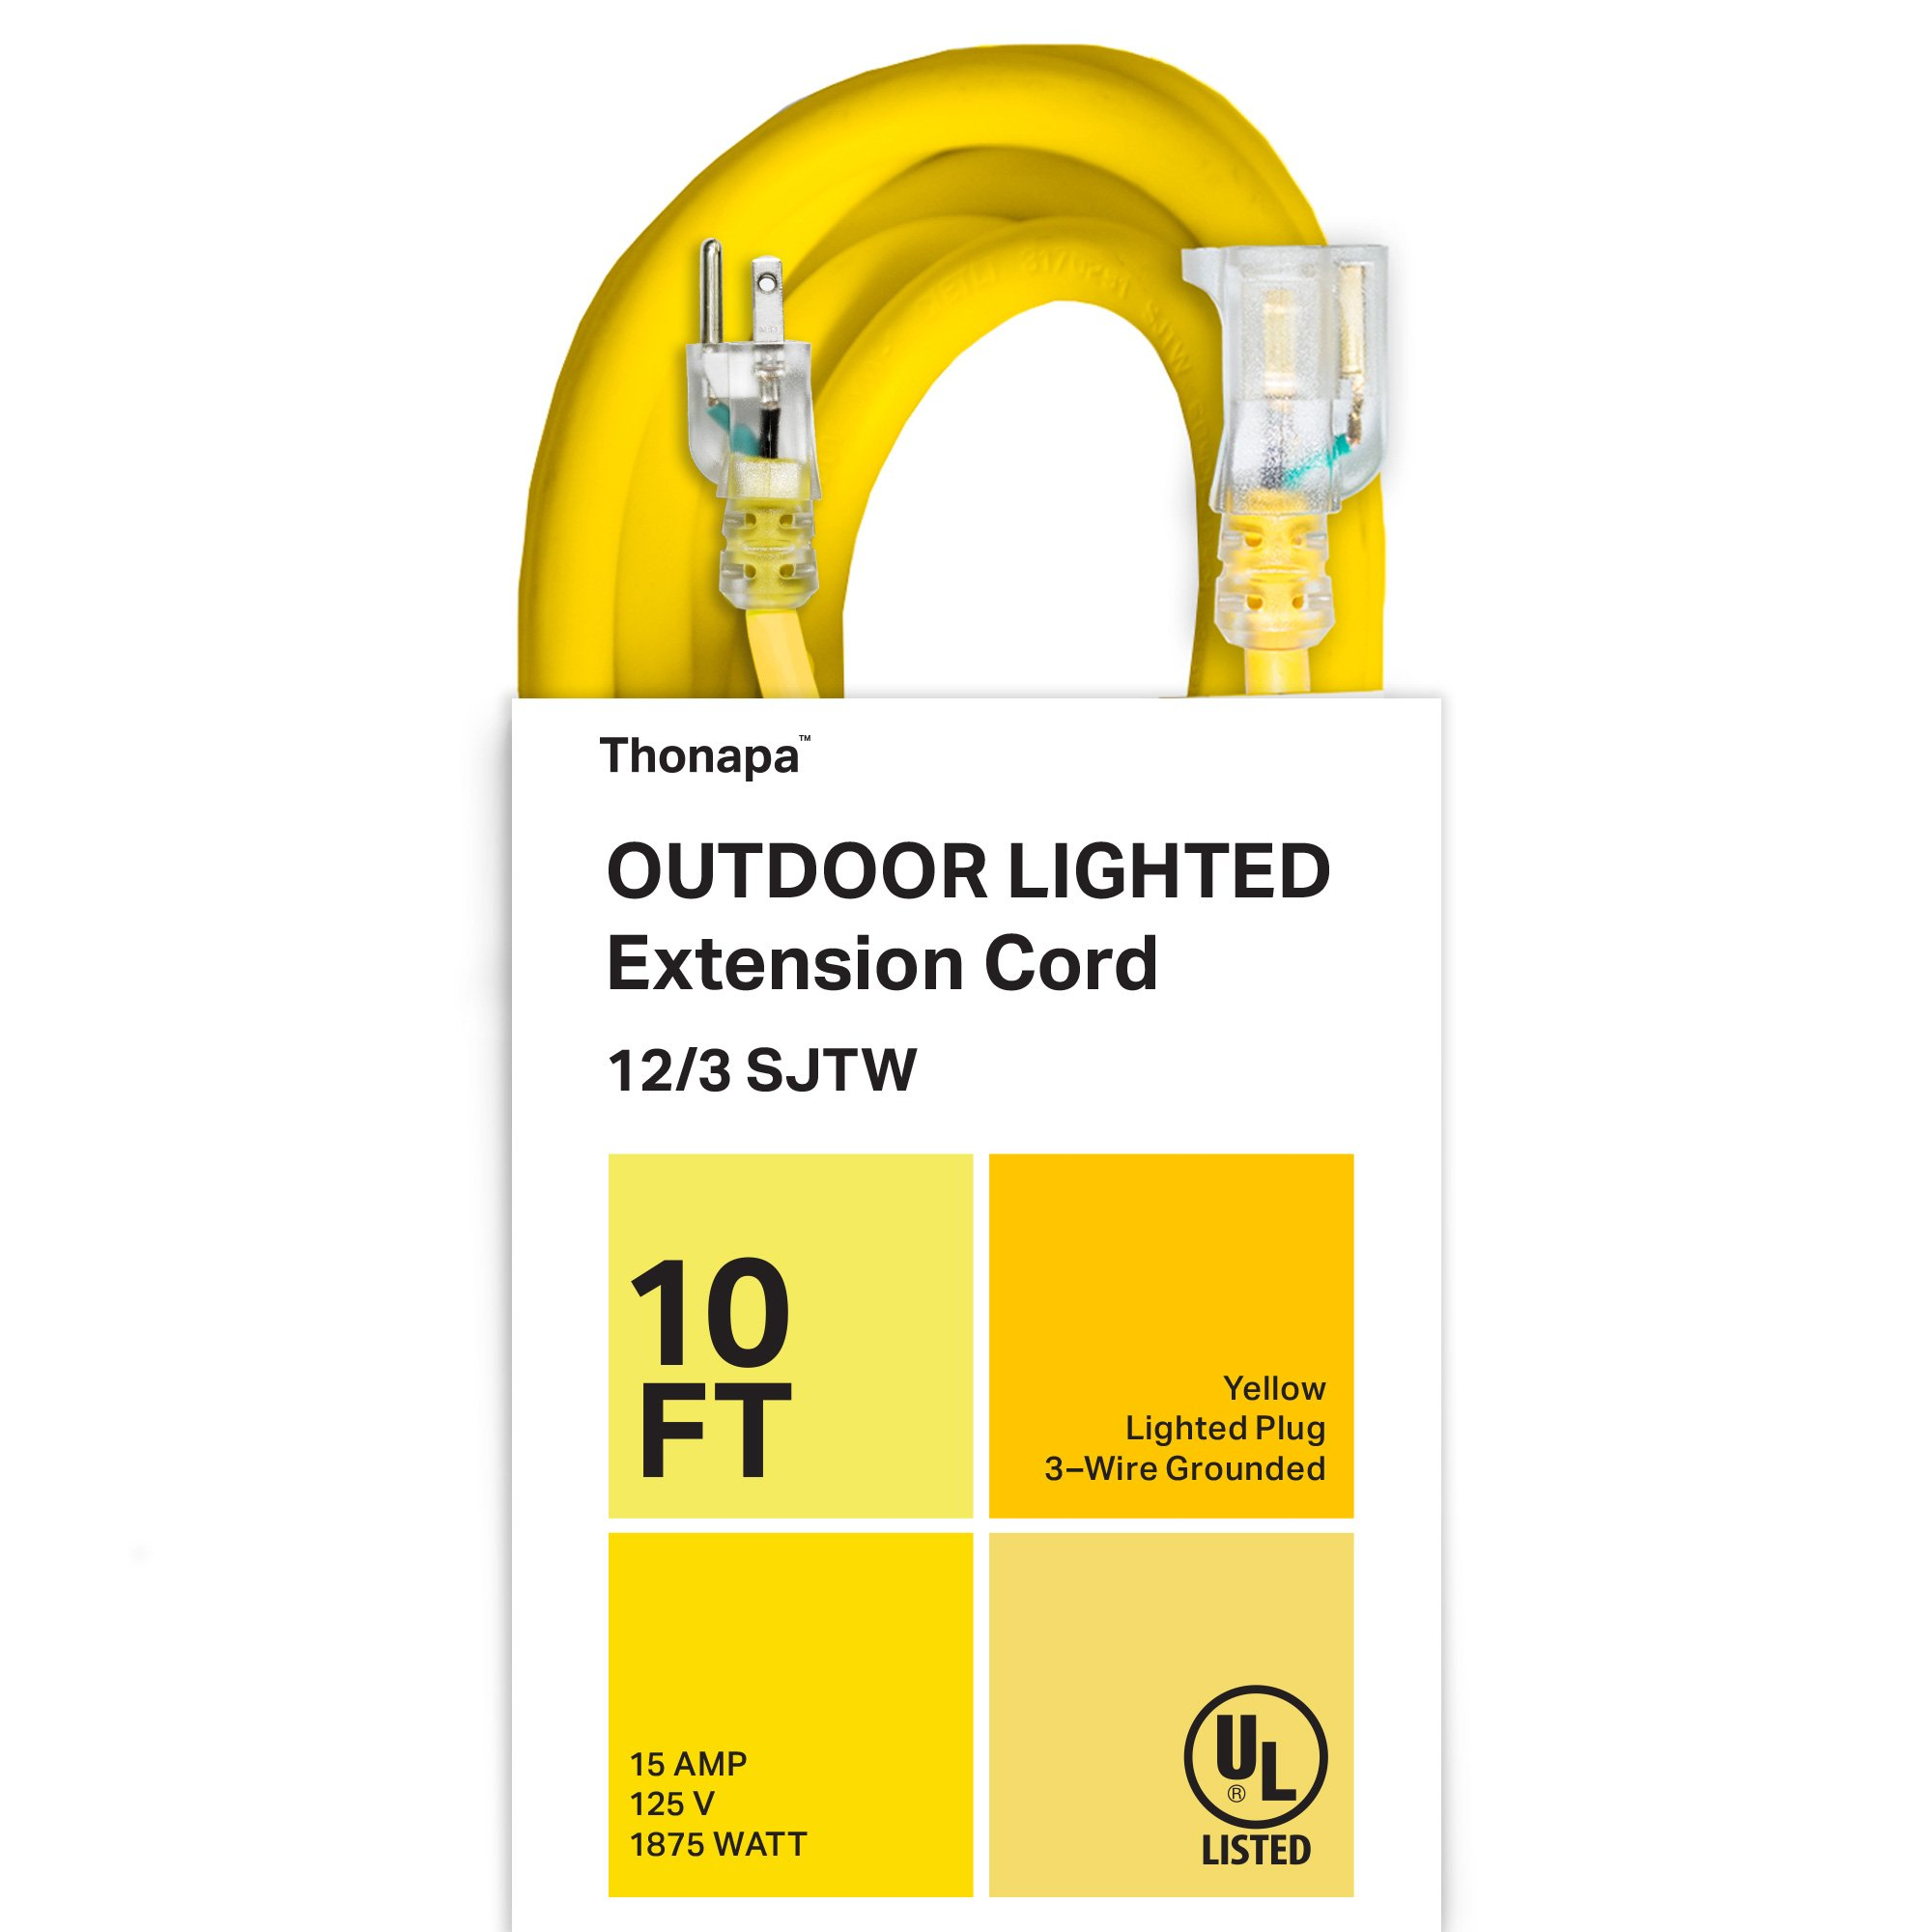 Thonapa 10 Foot Outdoor Extension Cord - 12/3 Heavy Duty Yellow Extension Cable with 3 Prong Grounded Plug for Safety - Great for Garden and Major Appliances